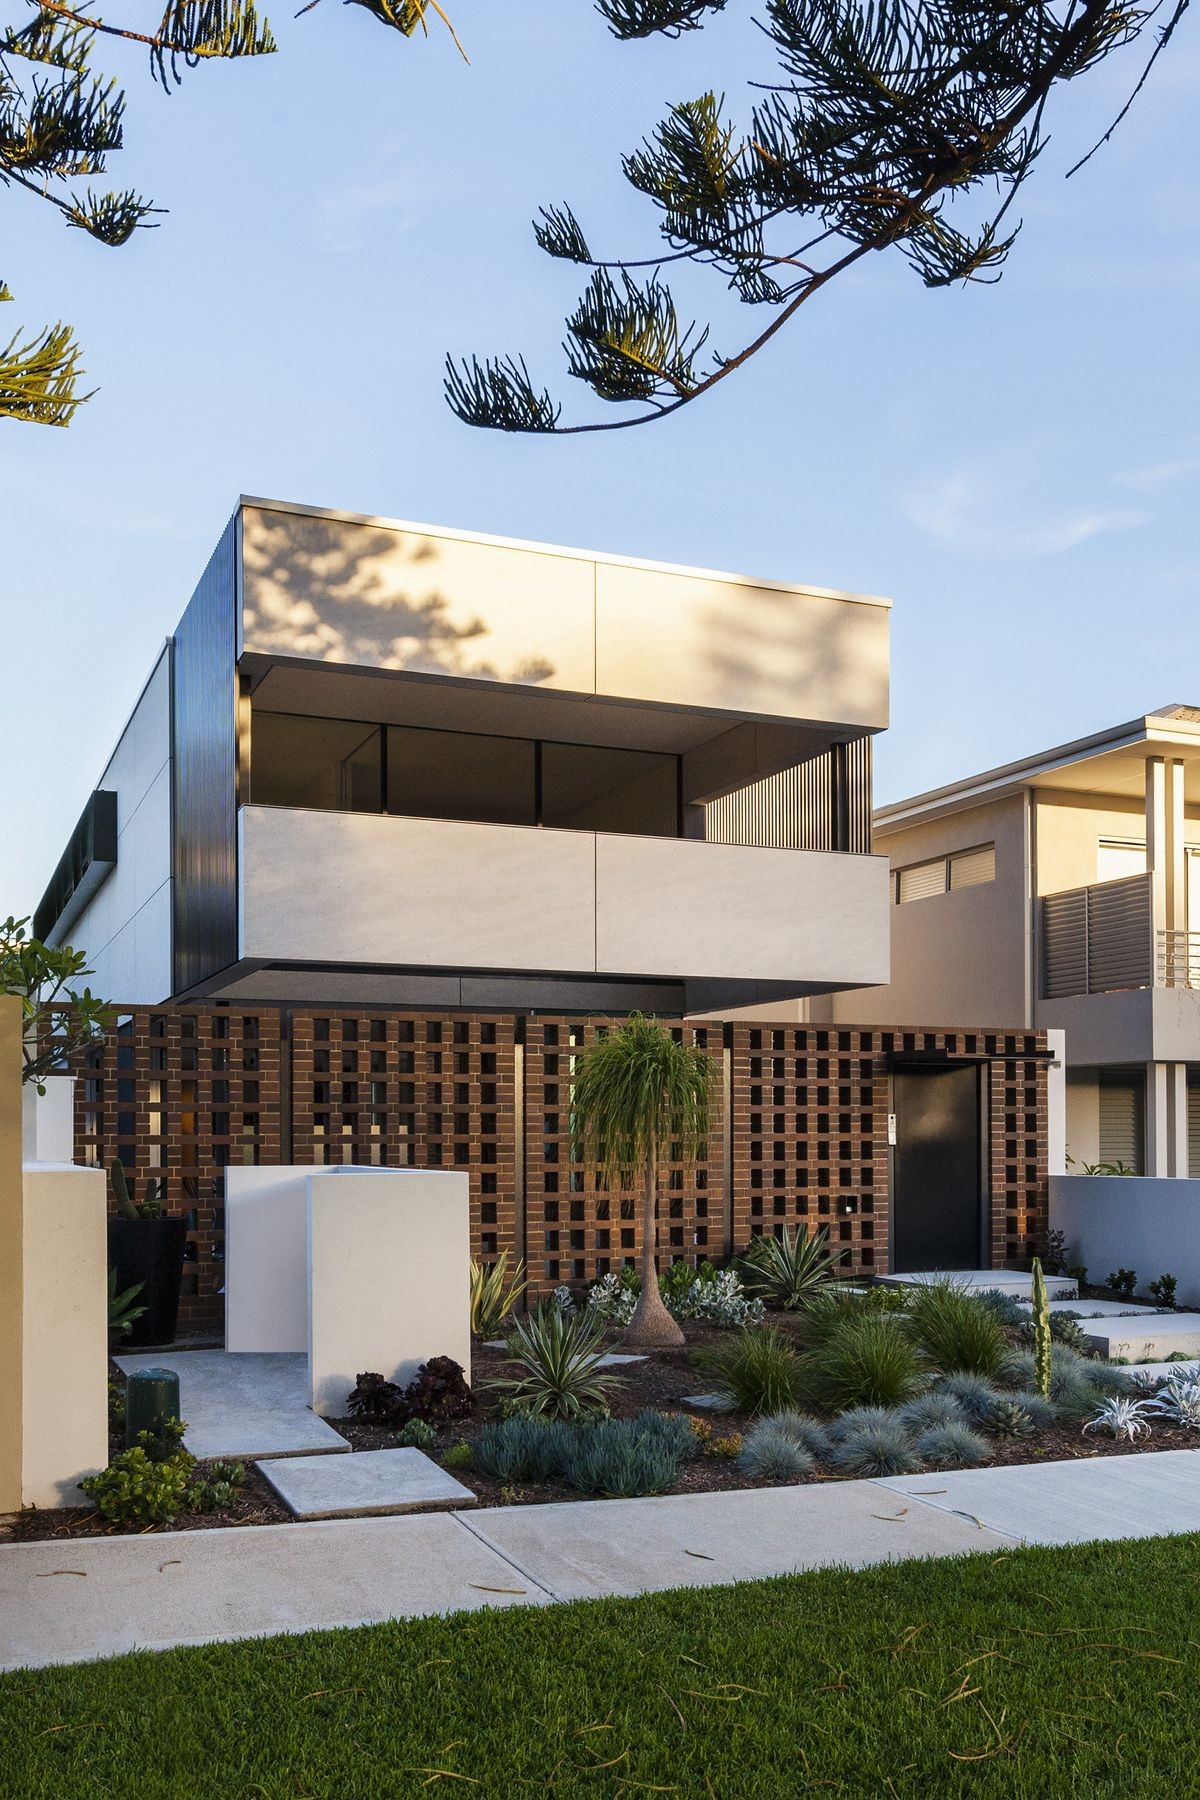 The concept of the Inside Outside House in Perth is to express the site as a room to inhabit Craig Steere Architects created a clear glass box form on the